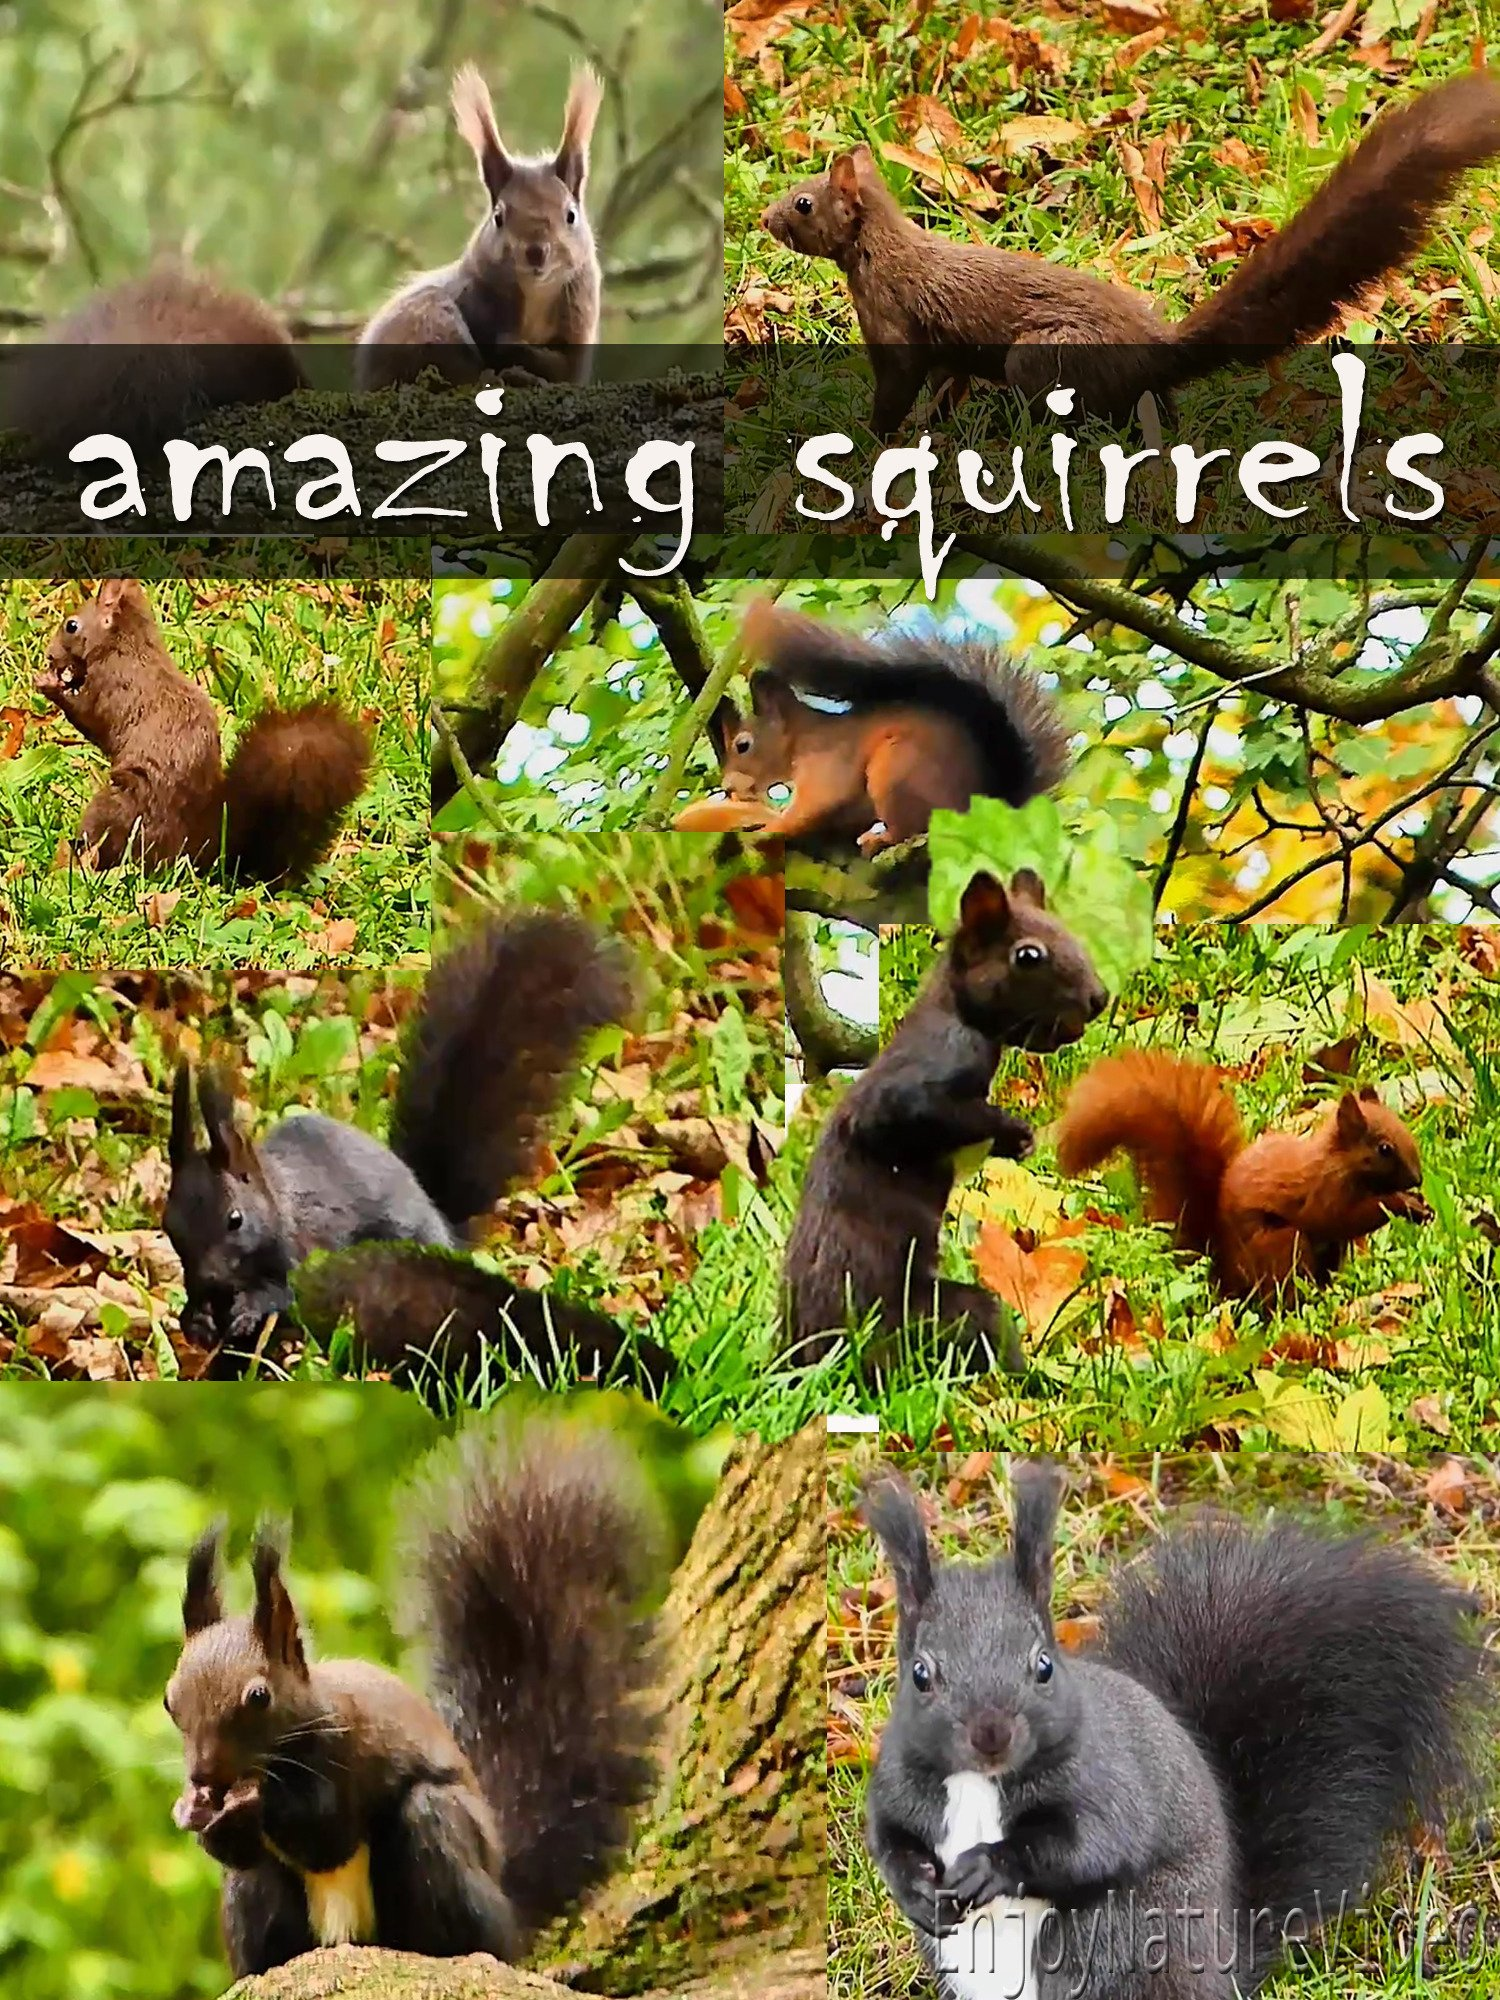 Amazing squirrels